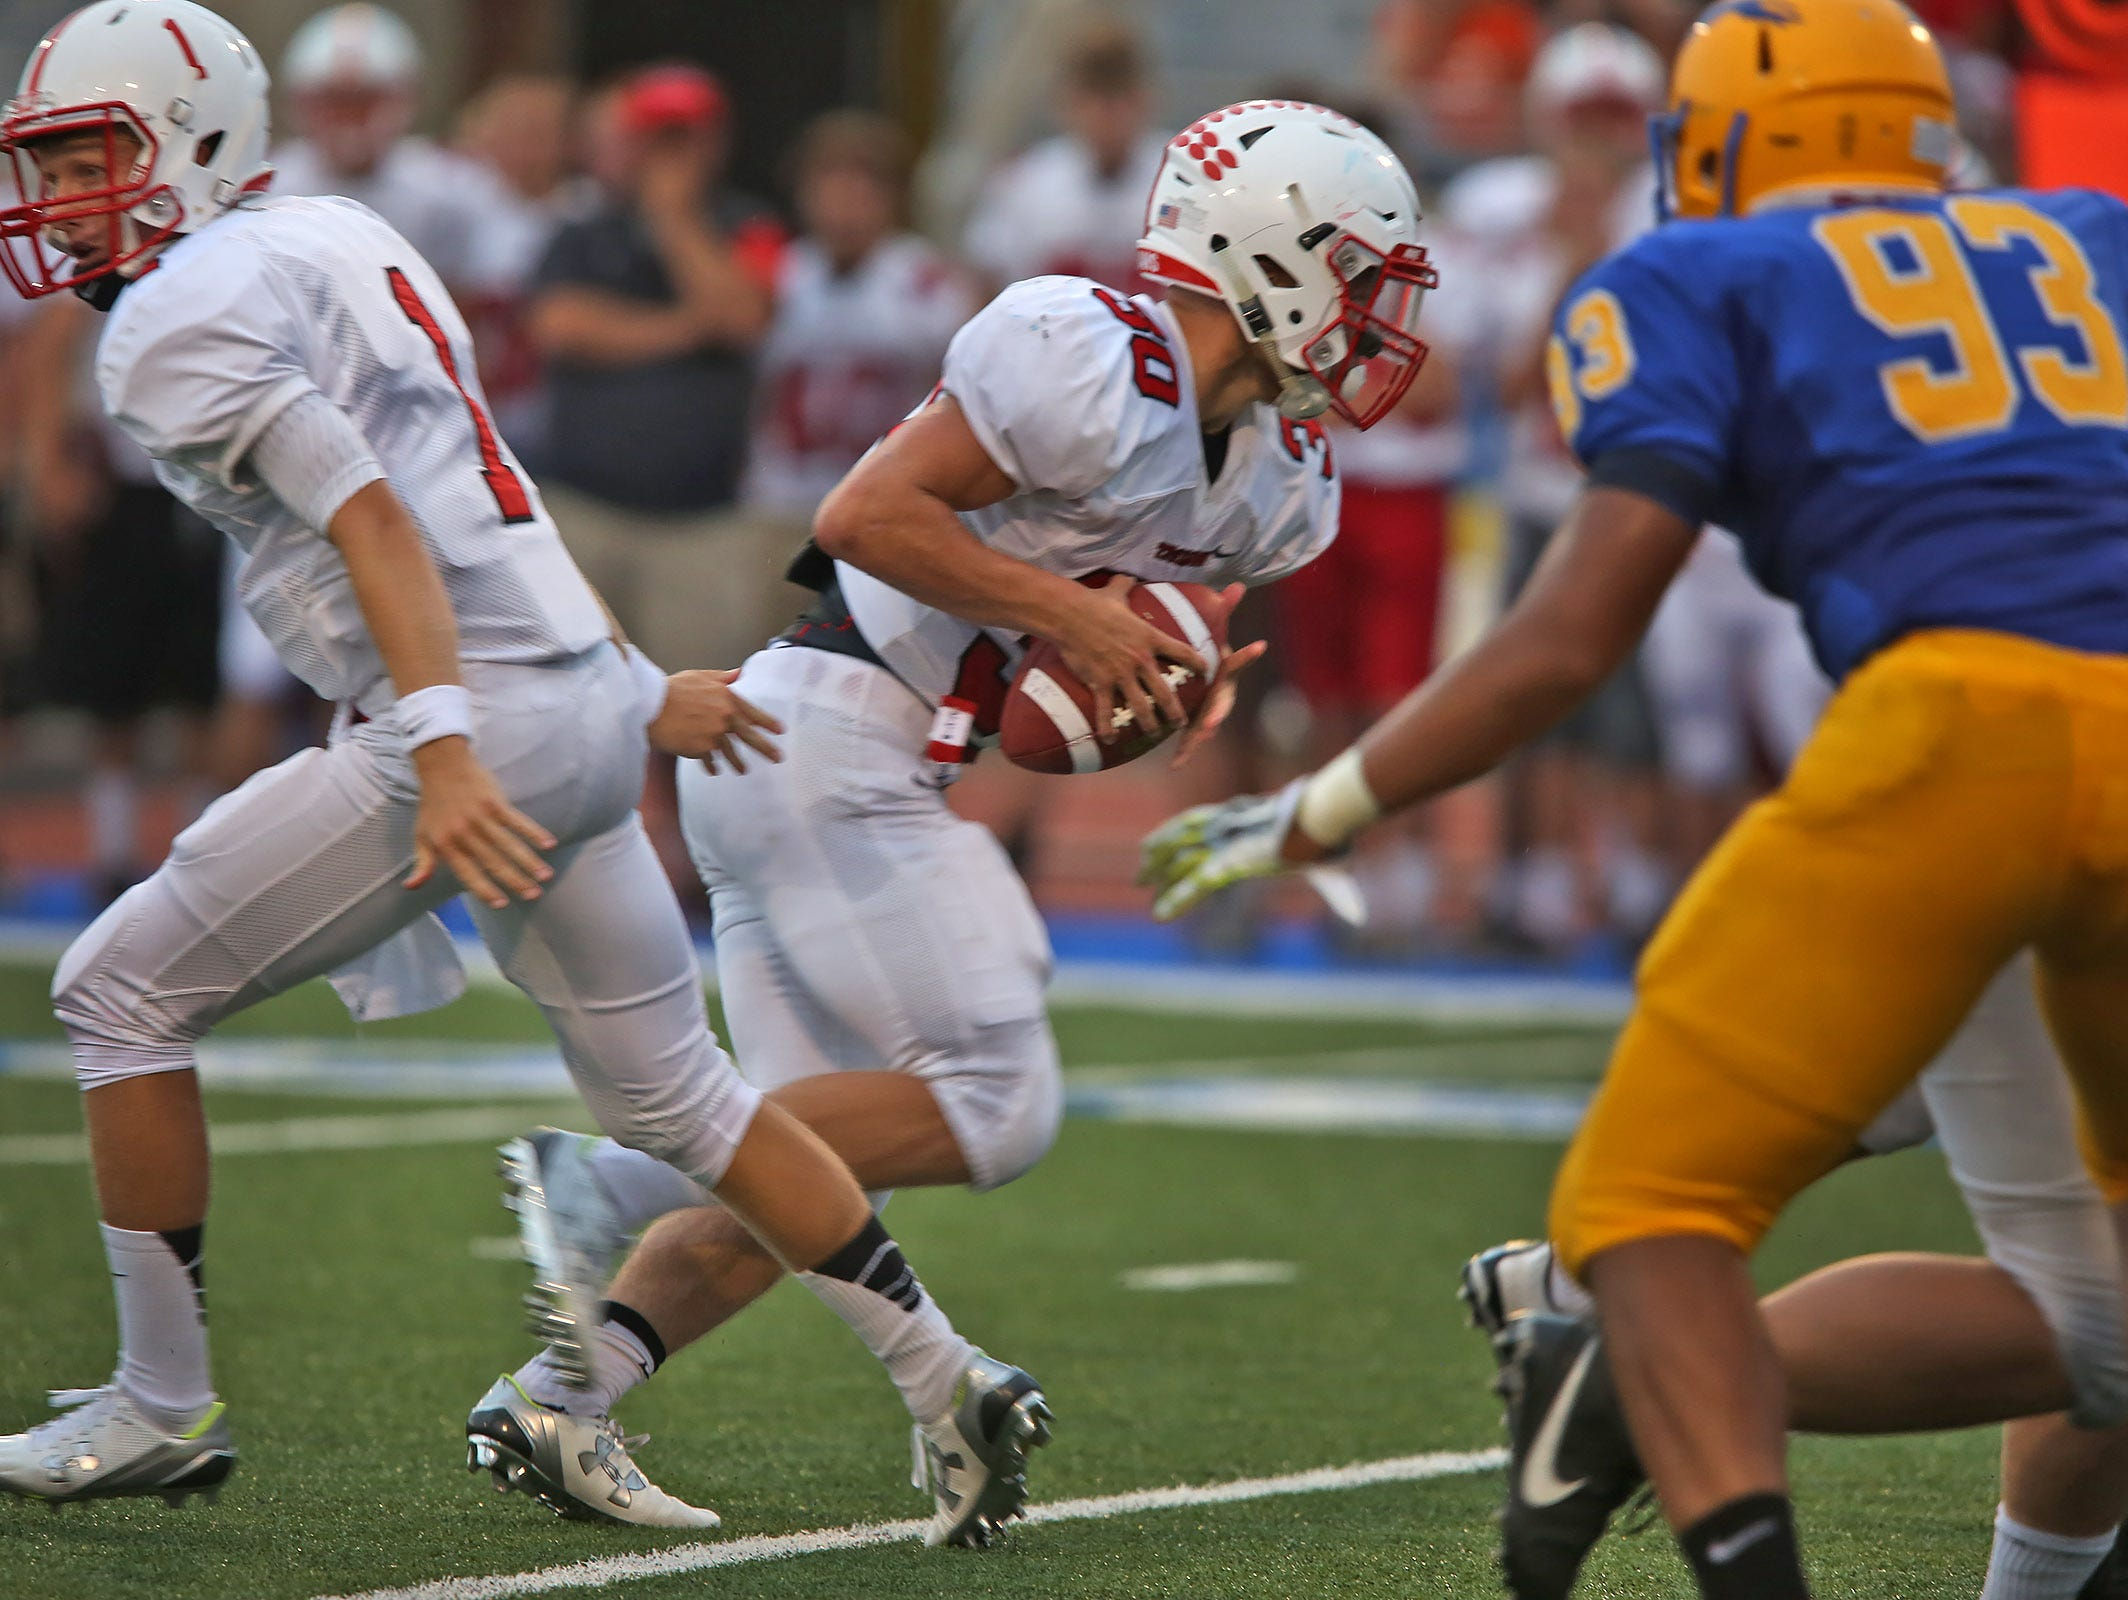 Center Grove quarterback #1 Joey Siderewicz passes to #30 Titus McCoy during the Center Grove at Carmel High School football game, Friday, September 4, 2015. Center Grove won 24-21.